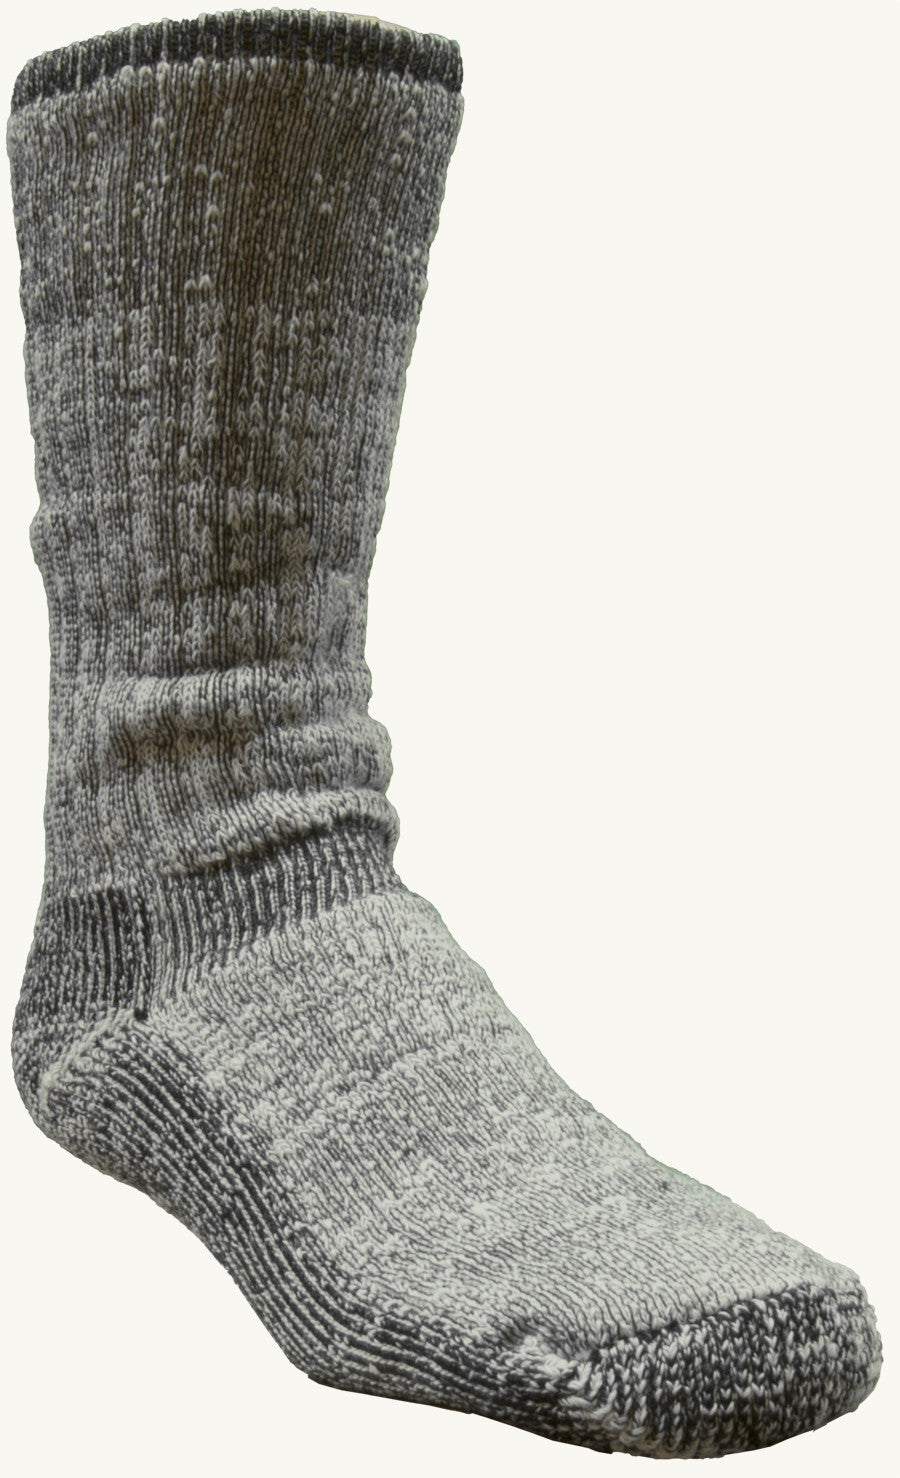 The Day Hiker Expedition Merino Wool Socks